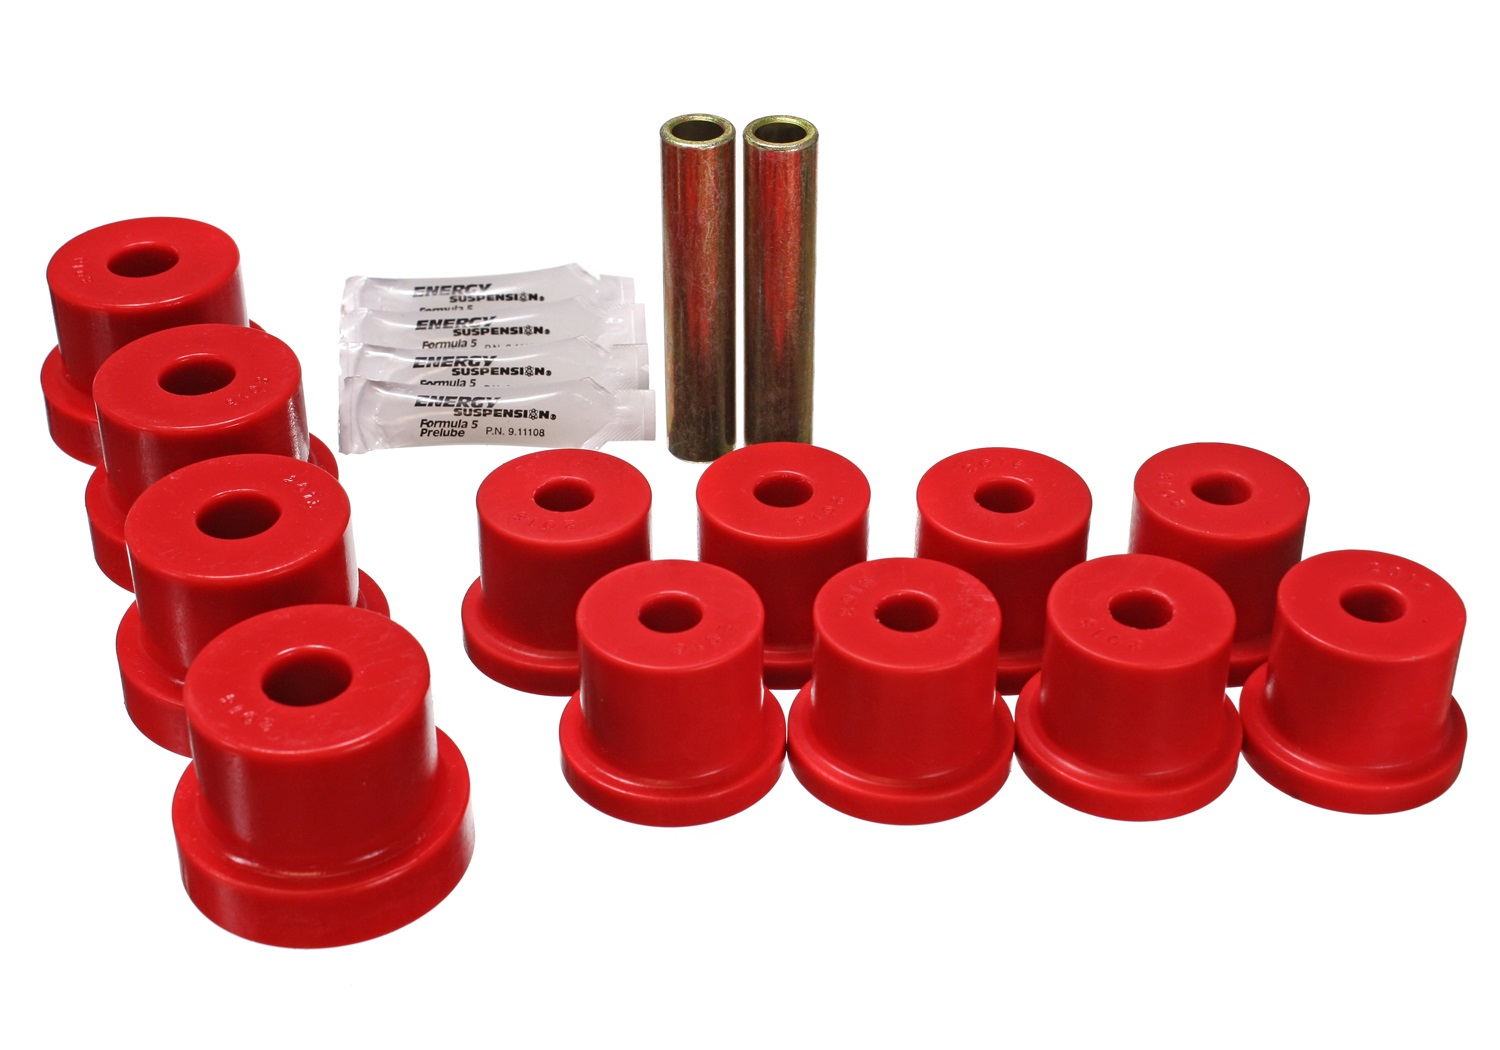 Energy Suspension Leaf Spring Bushing (3.2102R)